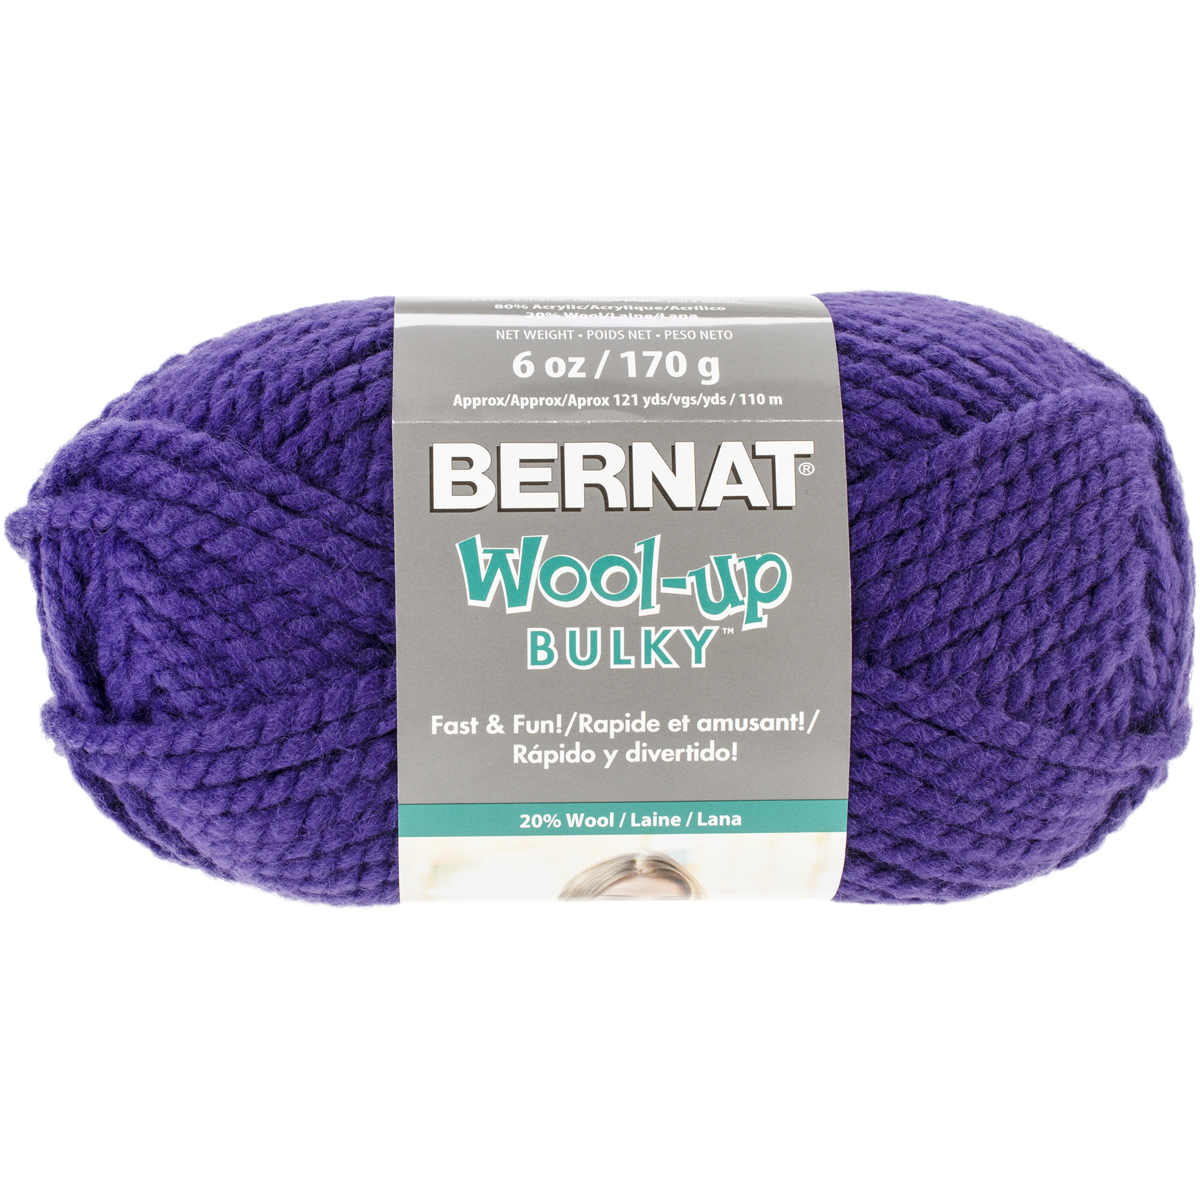 Spinrite Wool-Up Bulky Yarn, Purple Multi-Colored